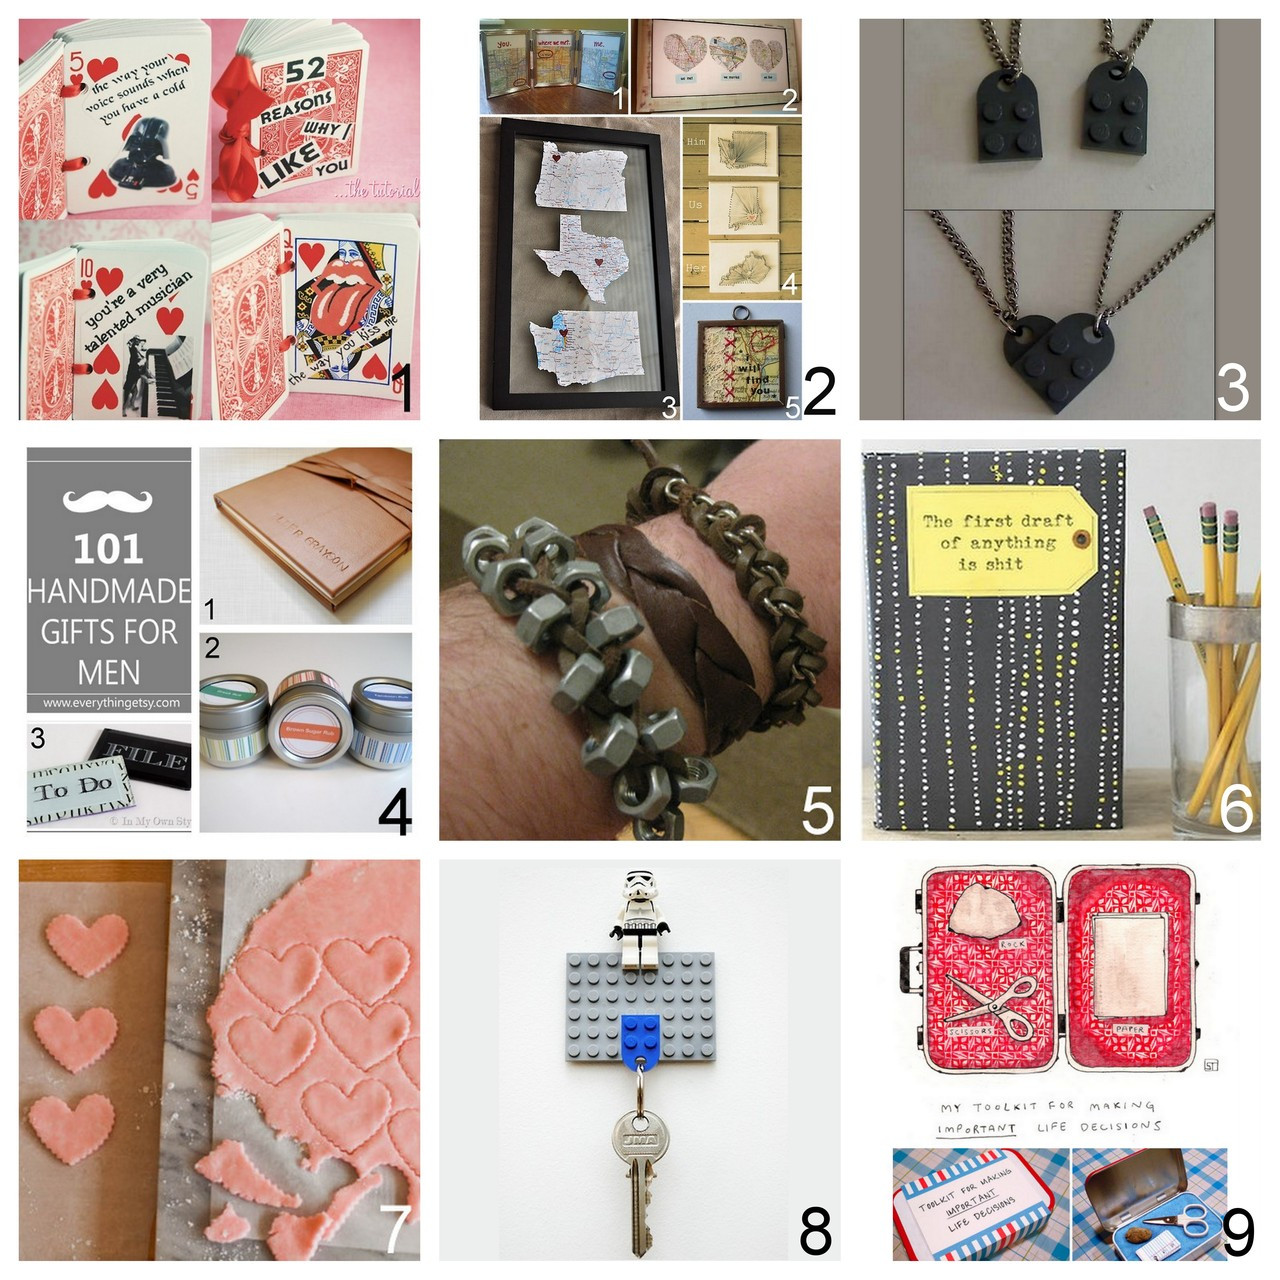 Best ideas about Diy Birthday Gift Ideas For Boyfriend . Save or Pin 18 Best s of DIY Gift Ideas For Boyfriend 52 Things Now.